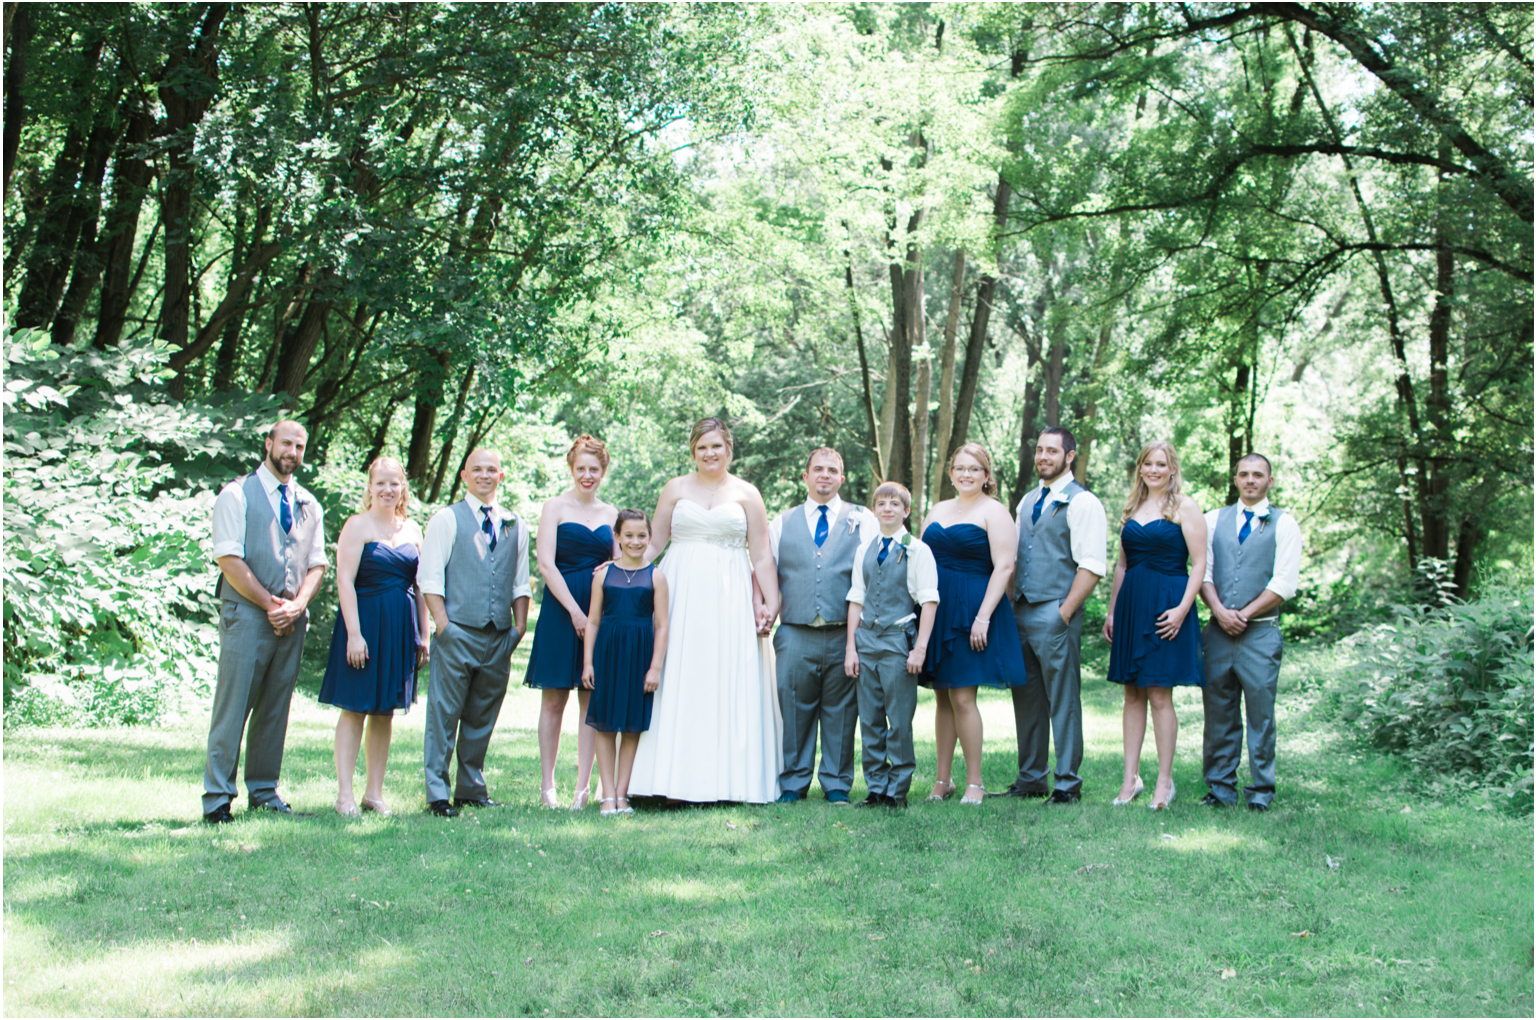 Married details groomsmen photography williamsport PA bridal party